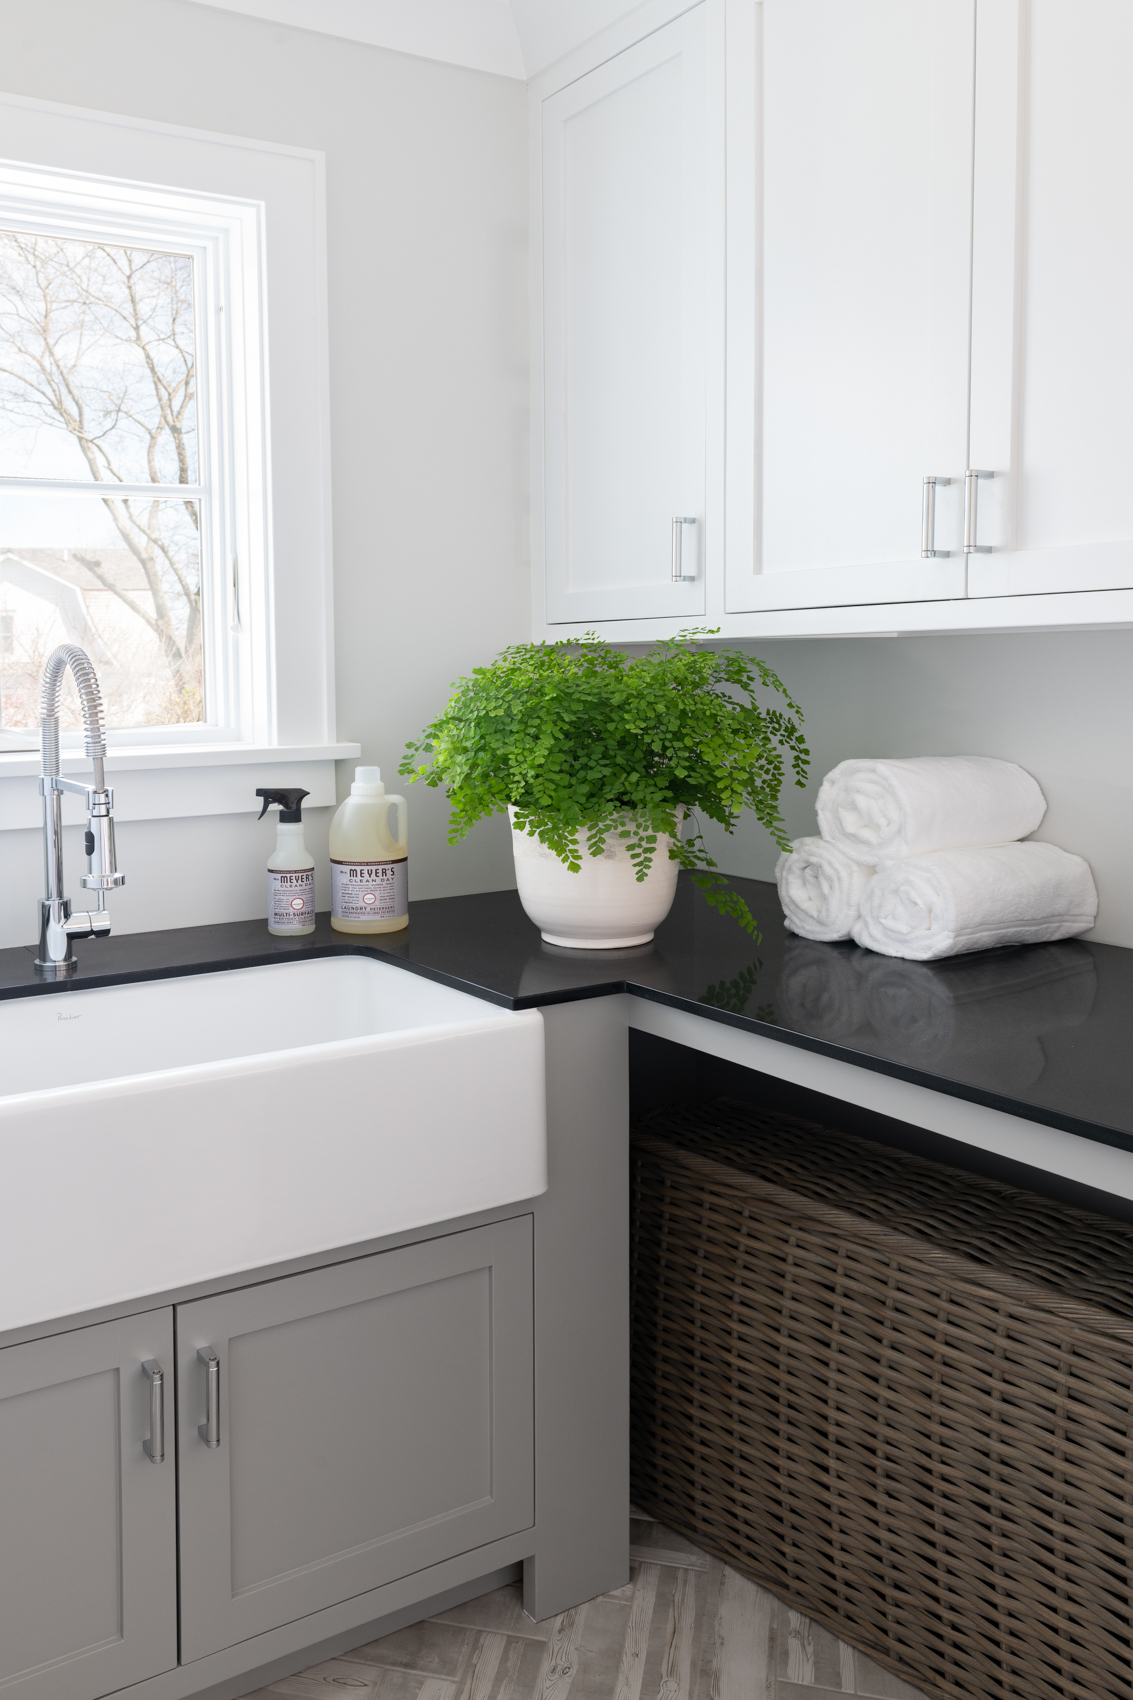 NYC + Chicago Interior Photographer - Laundry Room